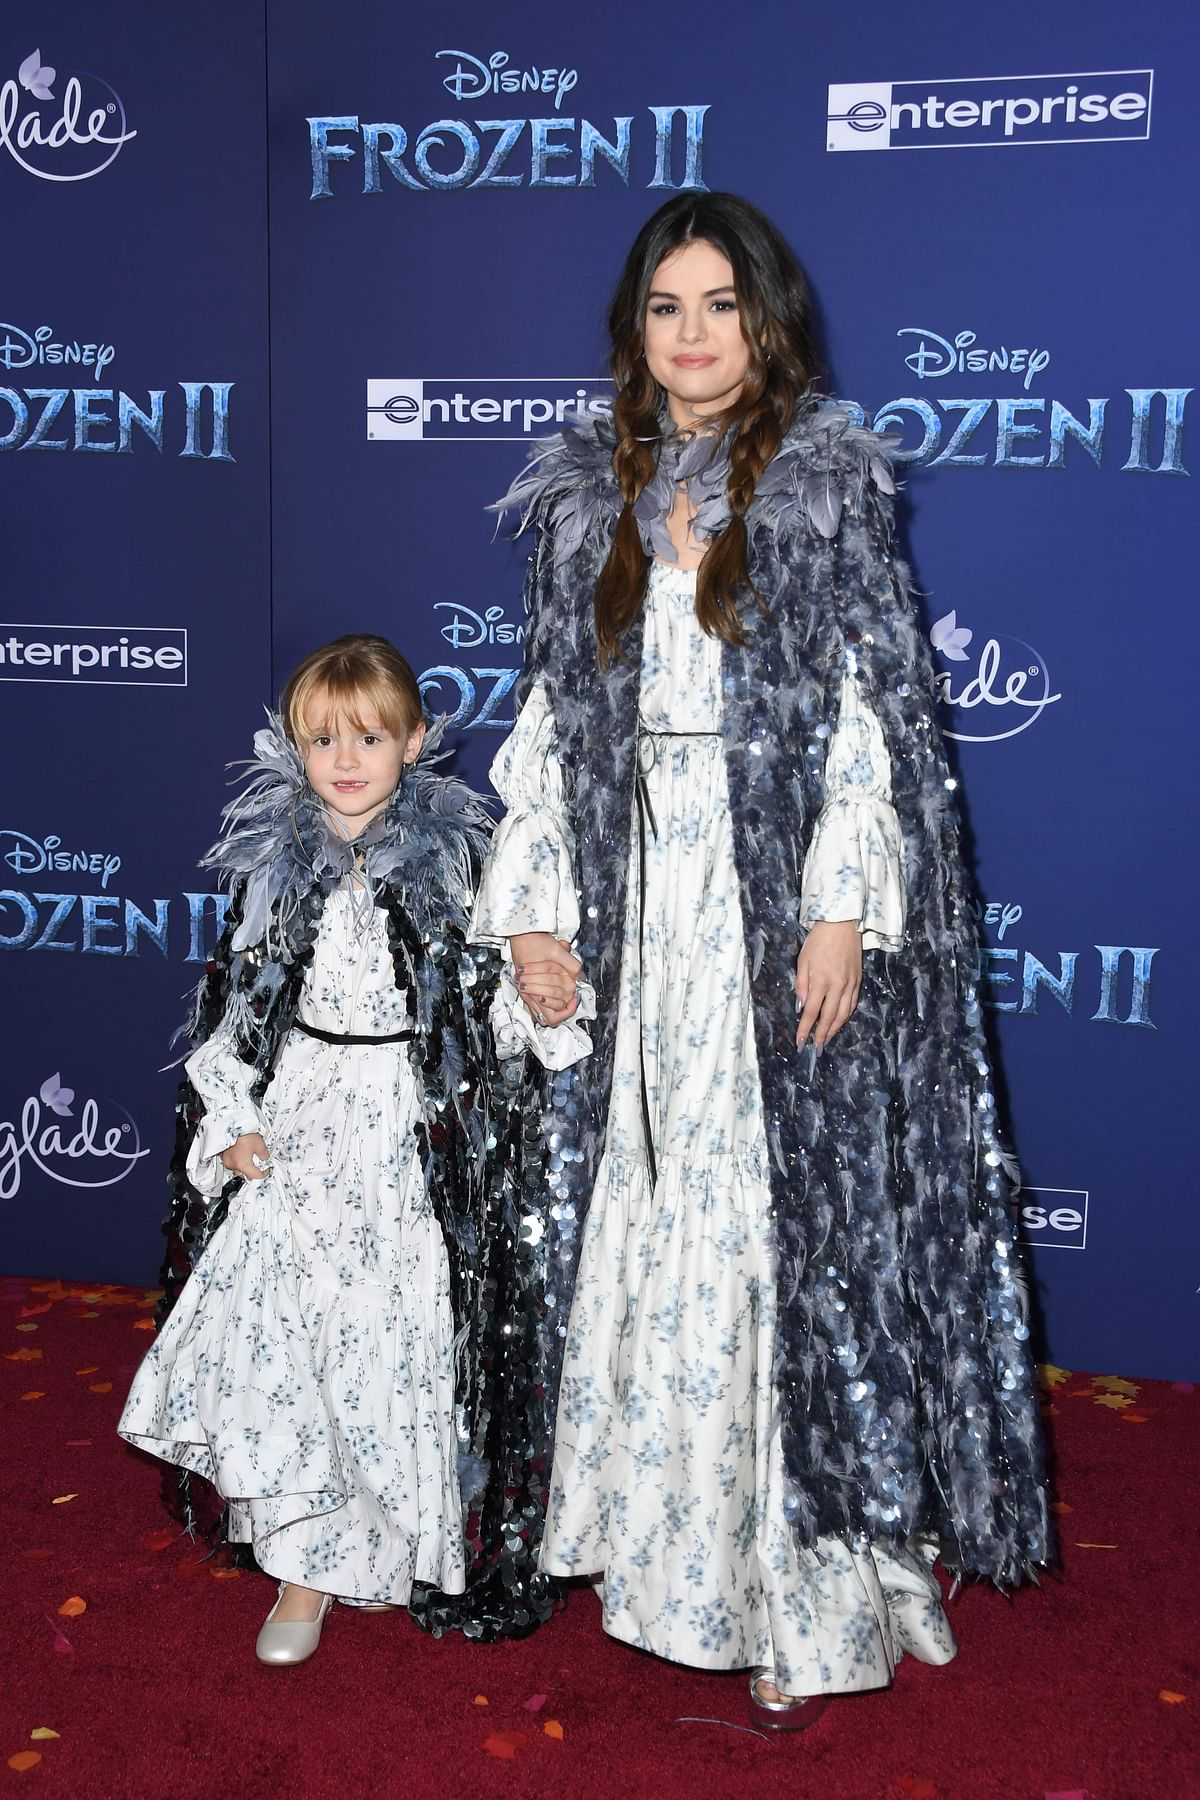 Selena Gomez, her little sister Gracie wear matching outfits at 'Frozen 2' premiere, see pics